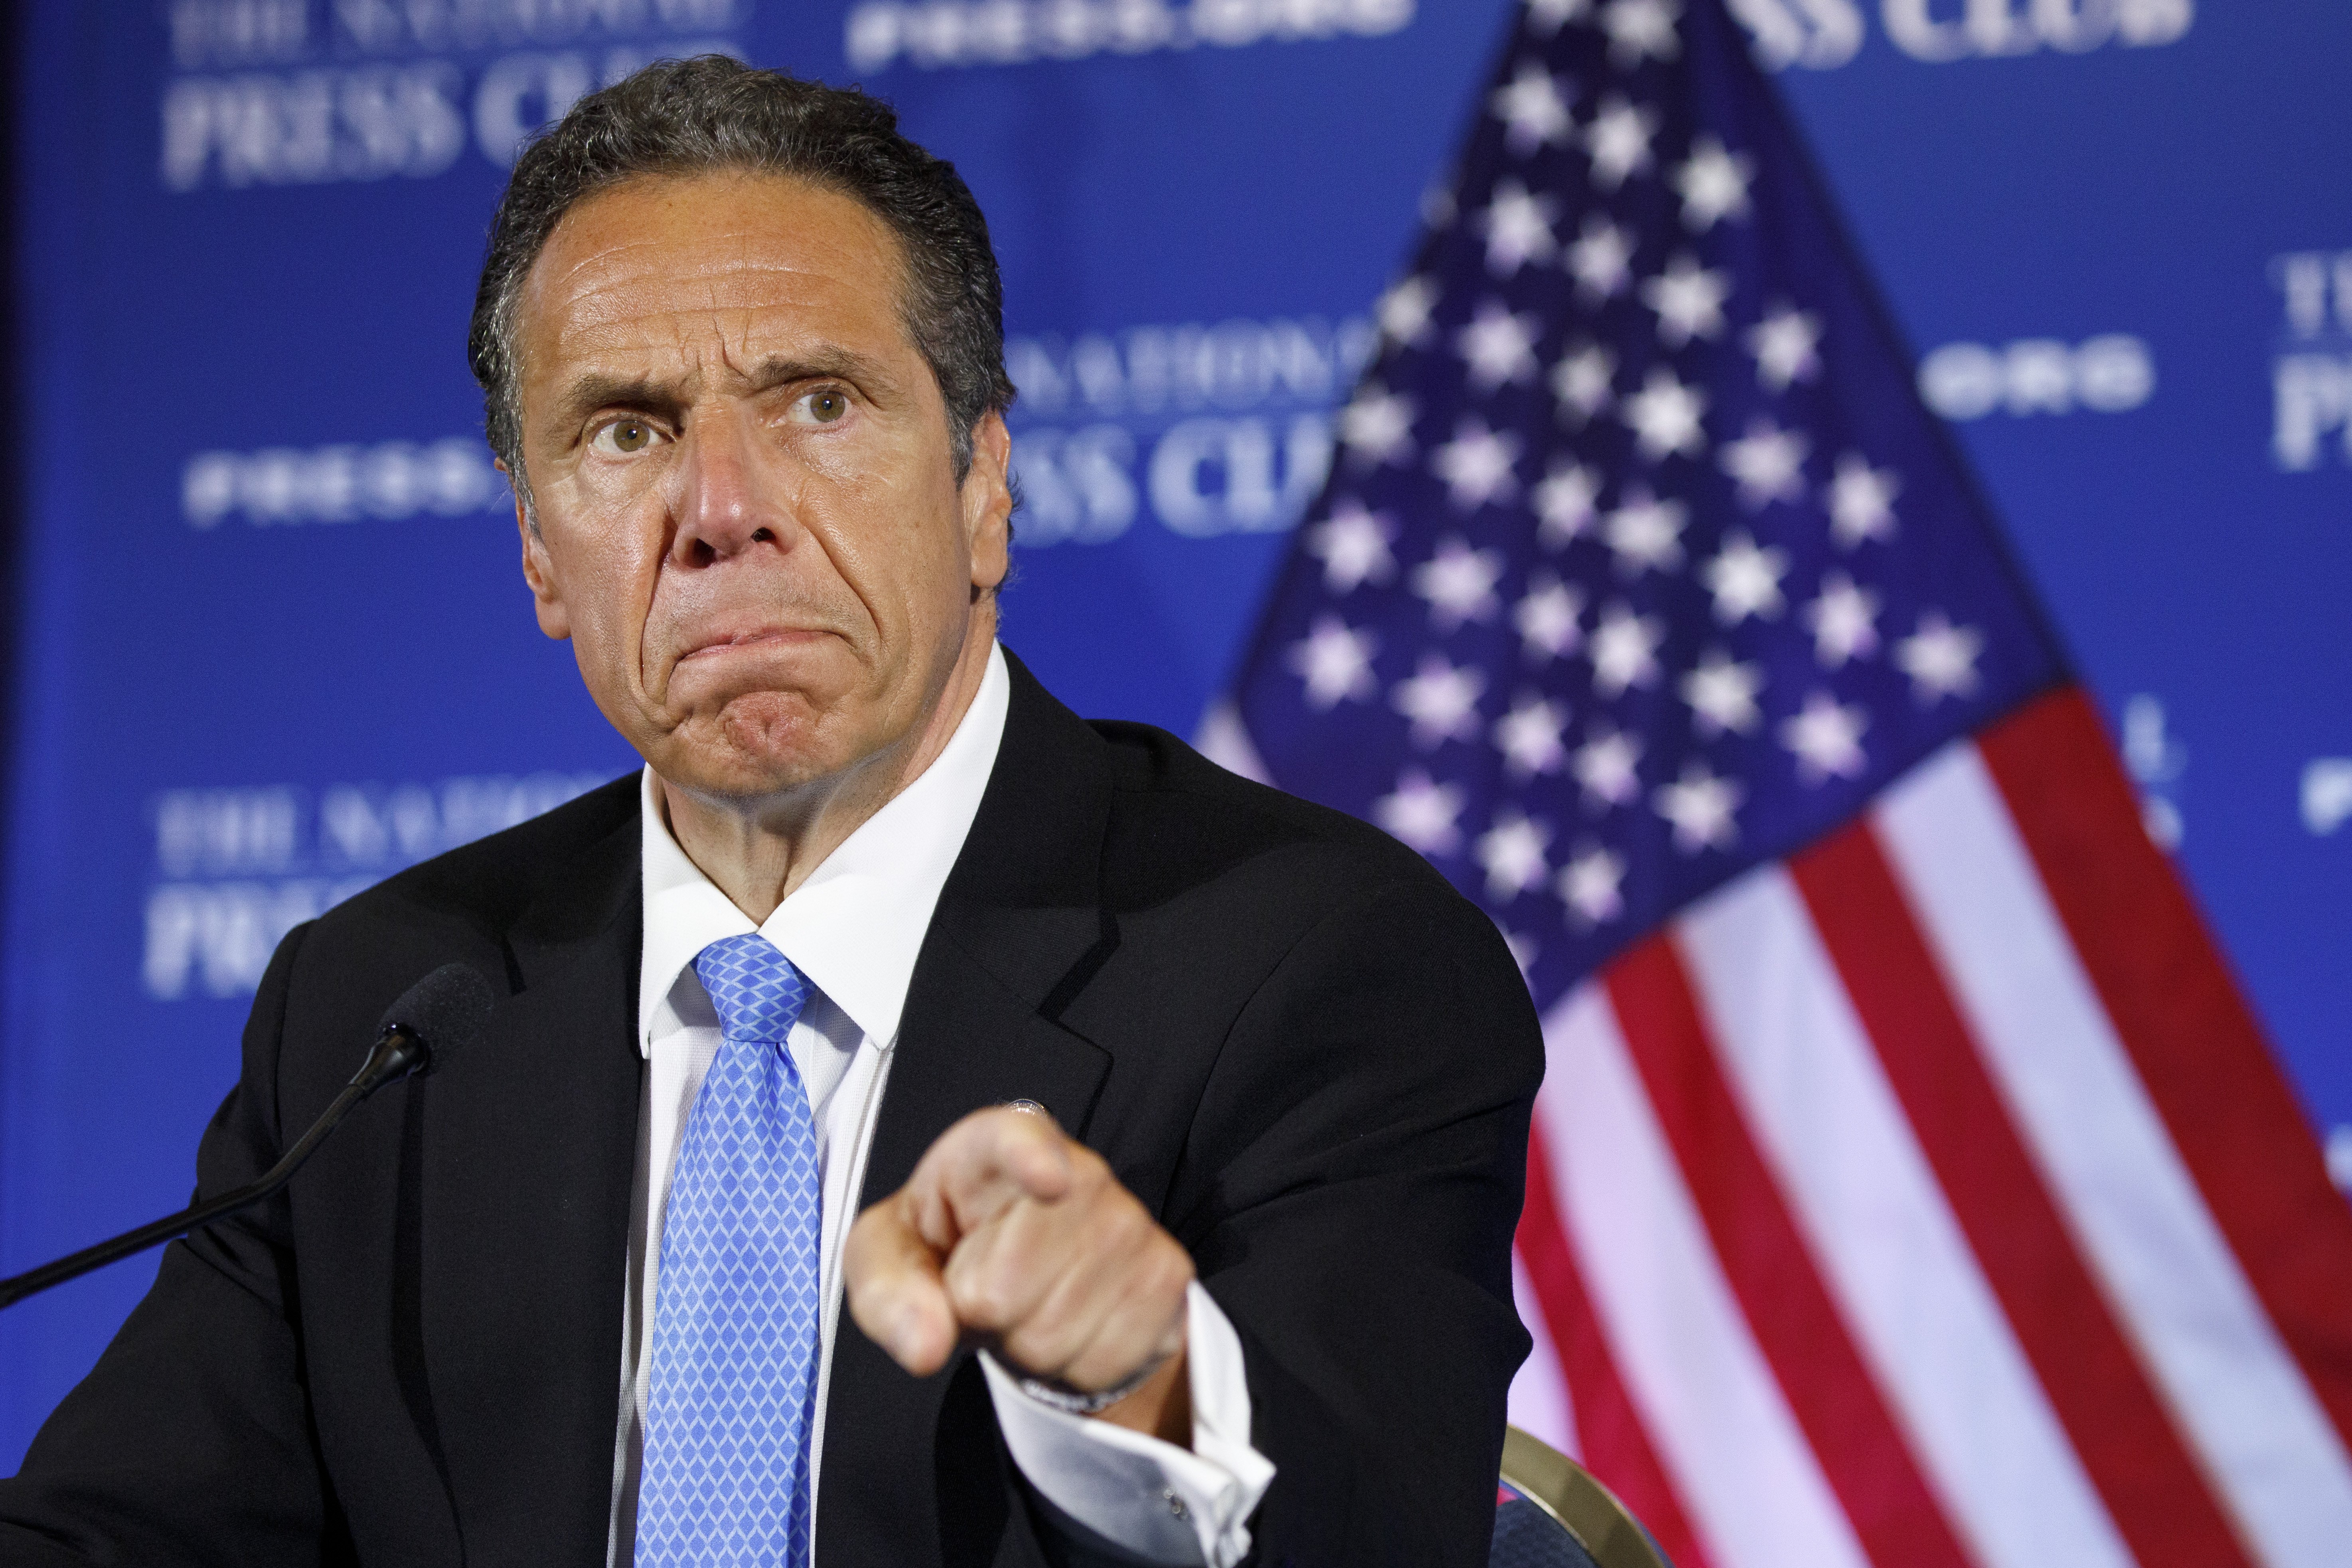 In this Wednesday, May 27, 2020, file photo, New York Gov. Andrew Cuomo speaks during a news conference, at the National Press Club in Washington.